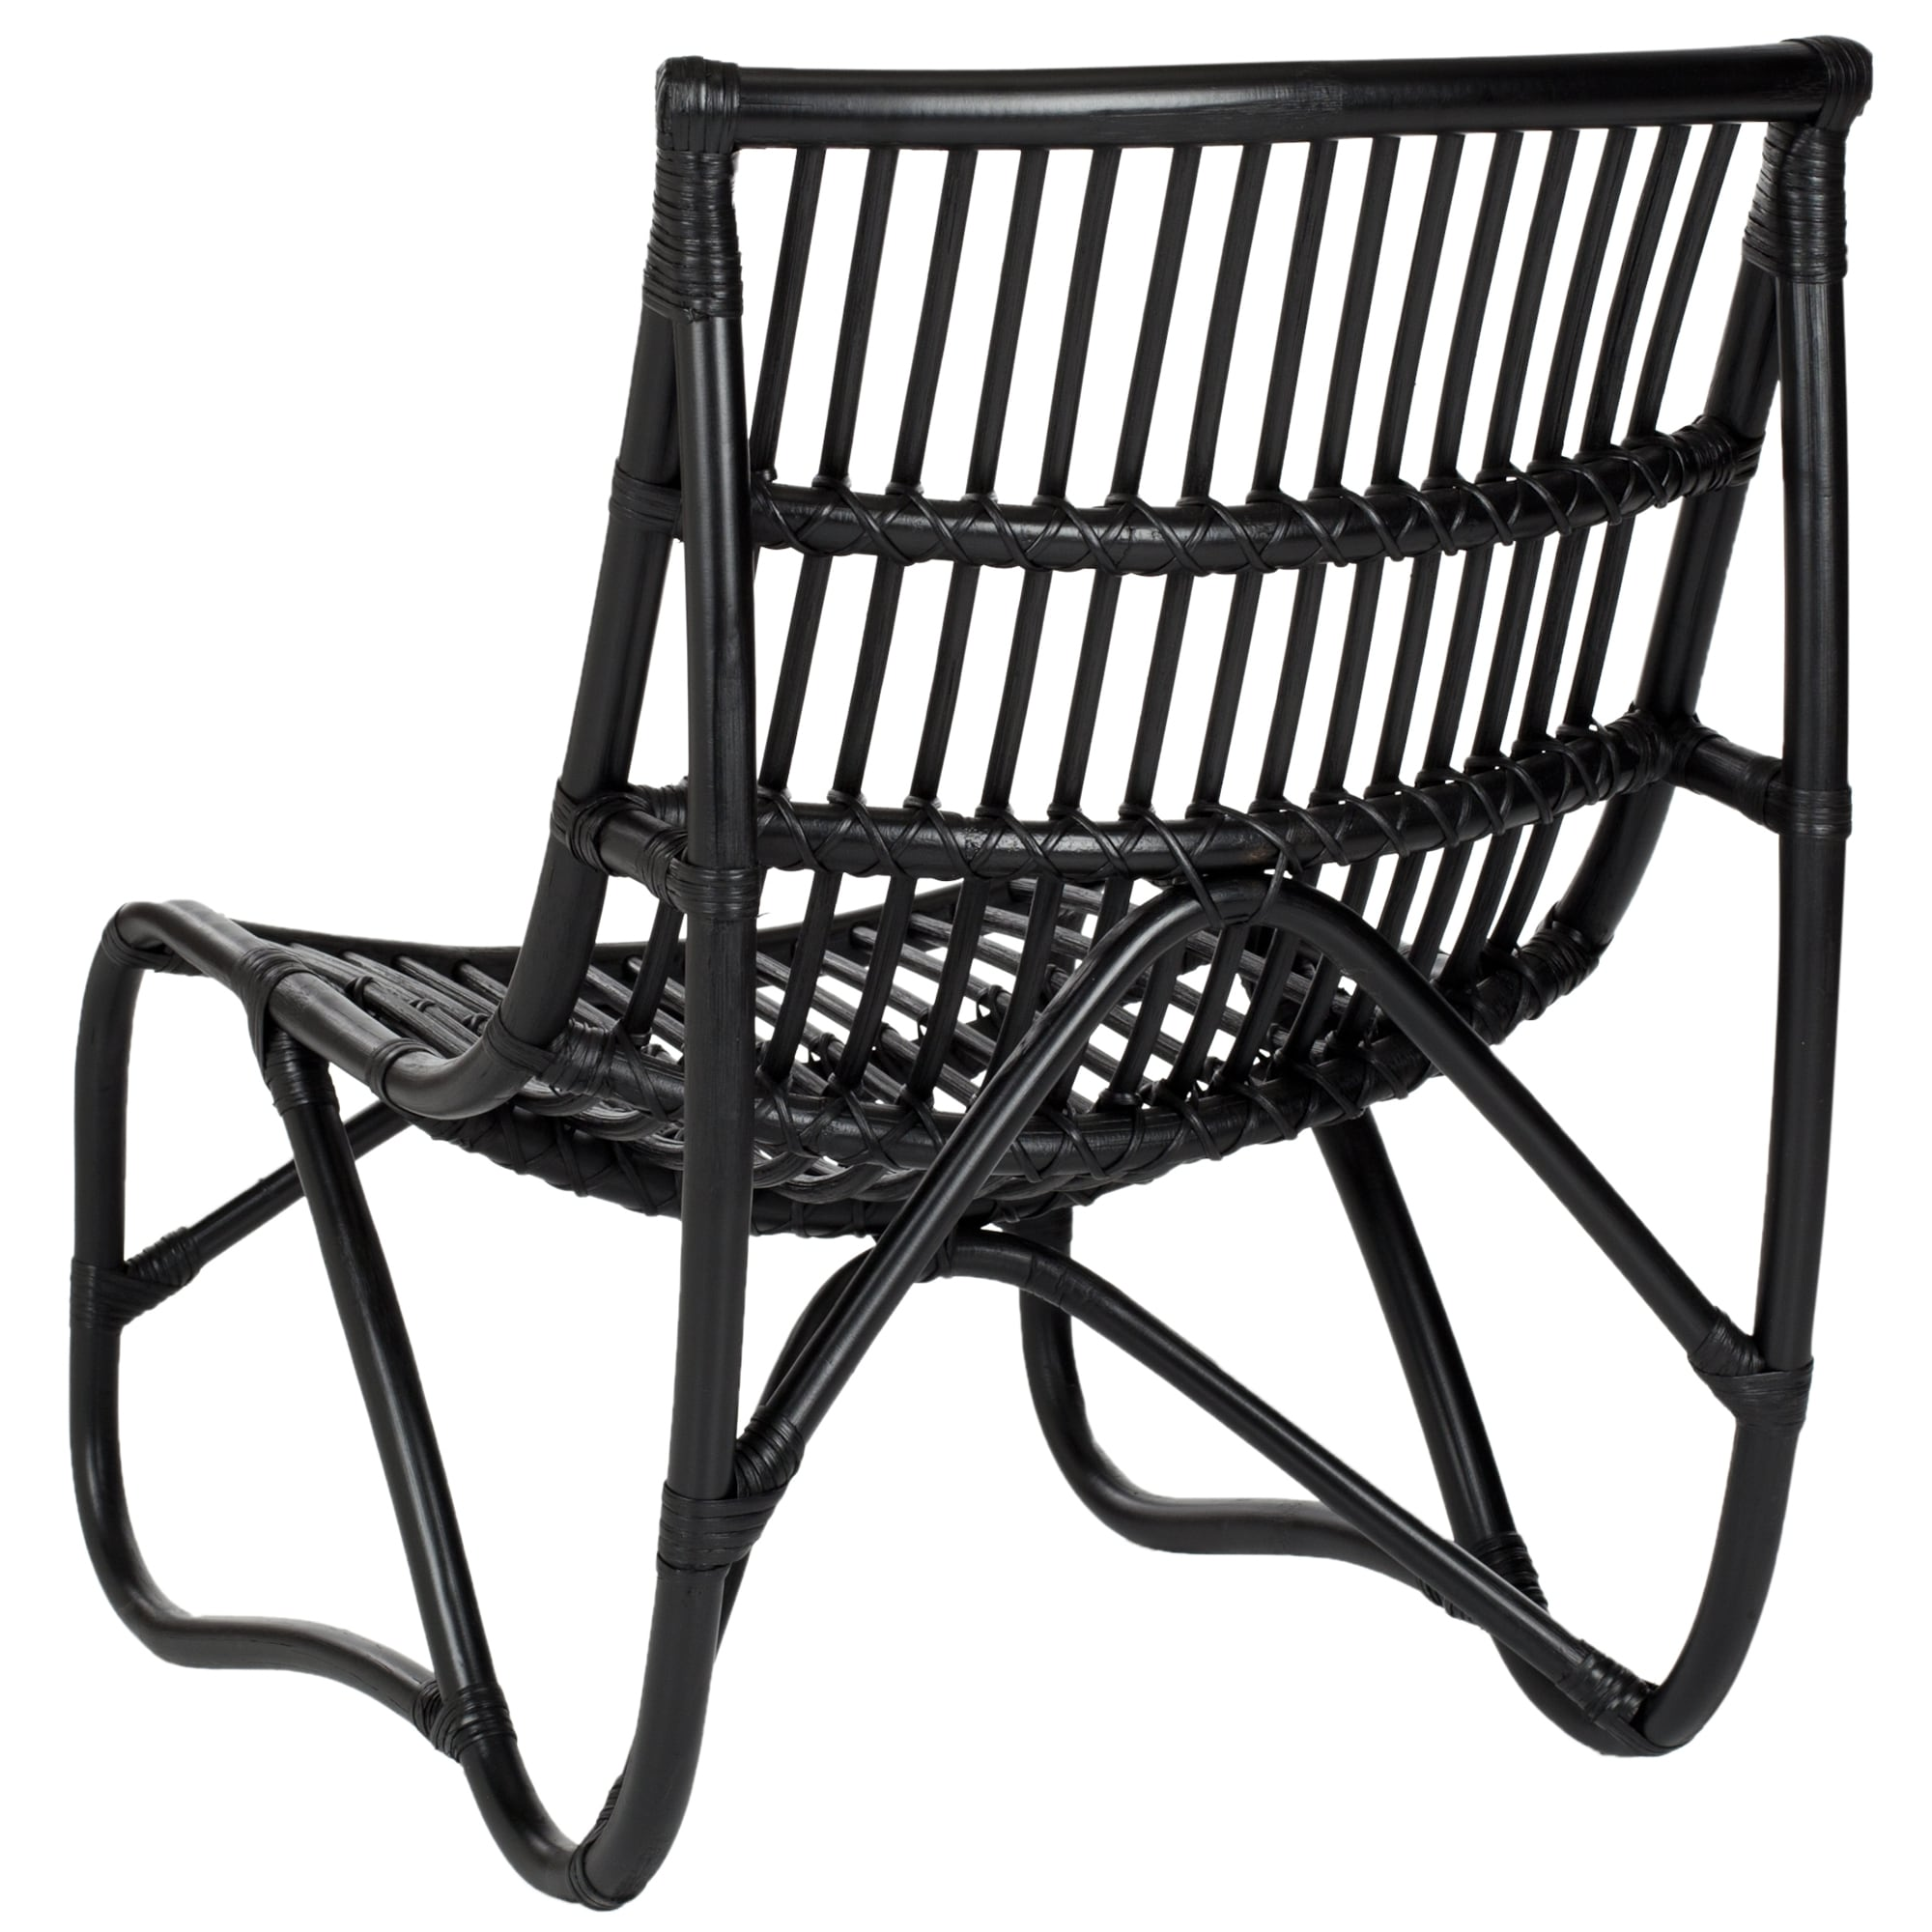 Marvelous Safavieh Shenandoah Black Wicker Chair And Ottoman Set   Free Shipping  Today   Overstock   14846875